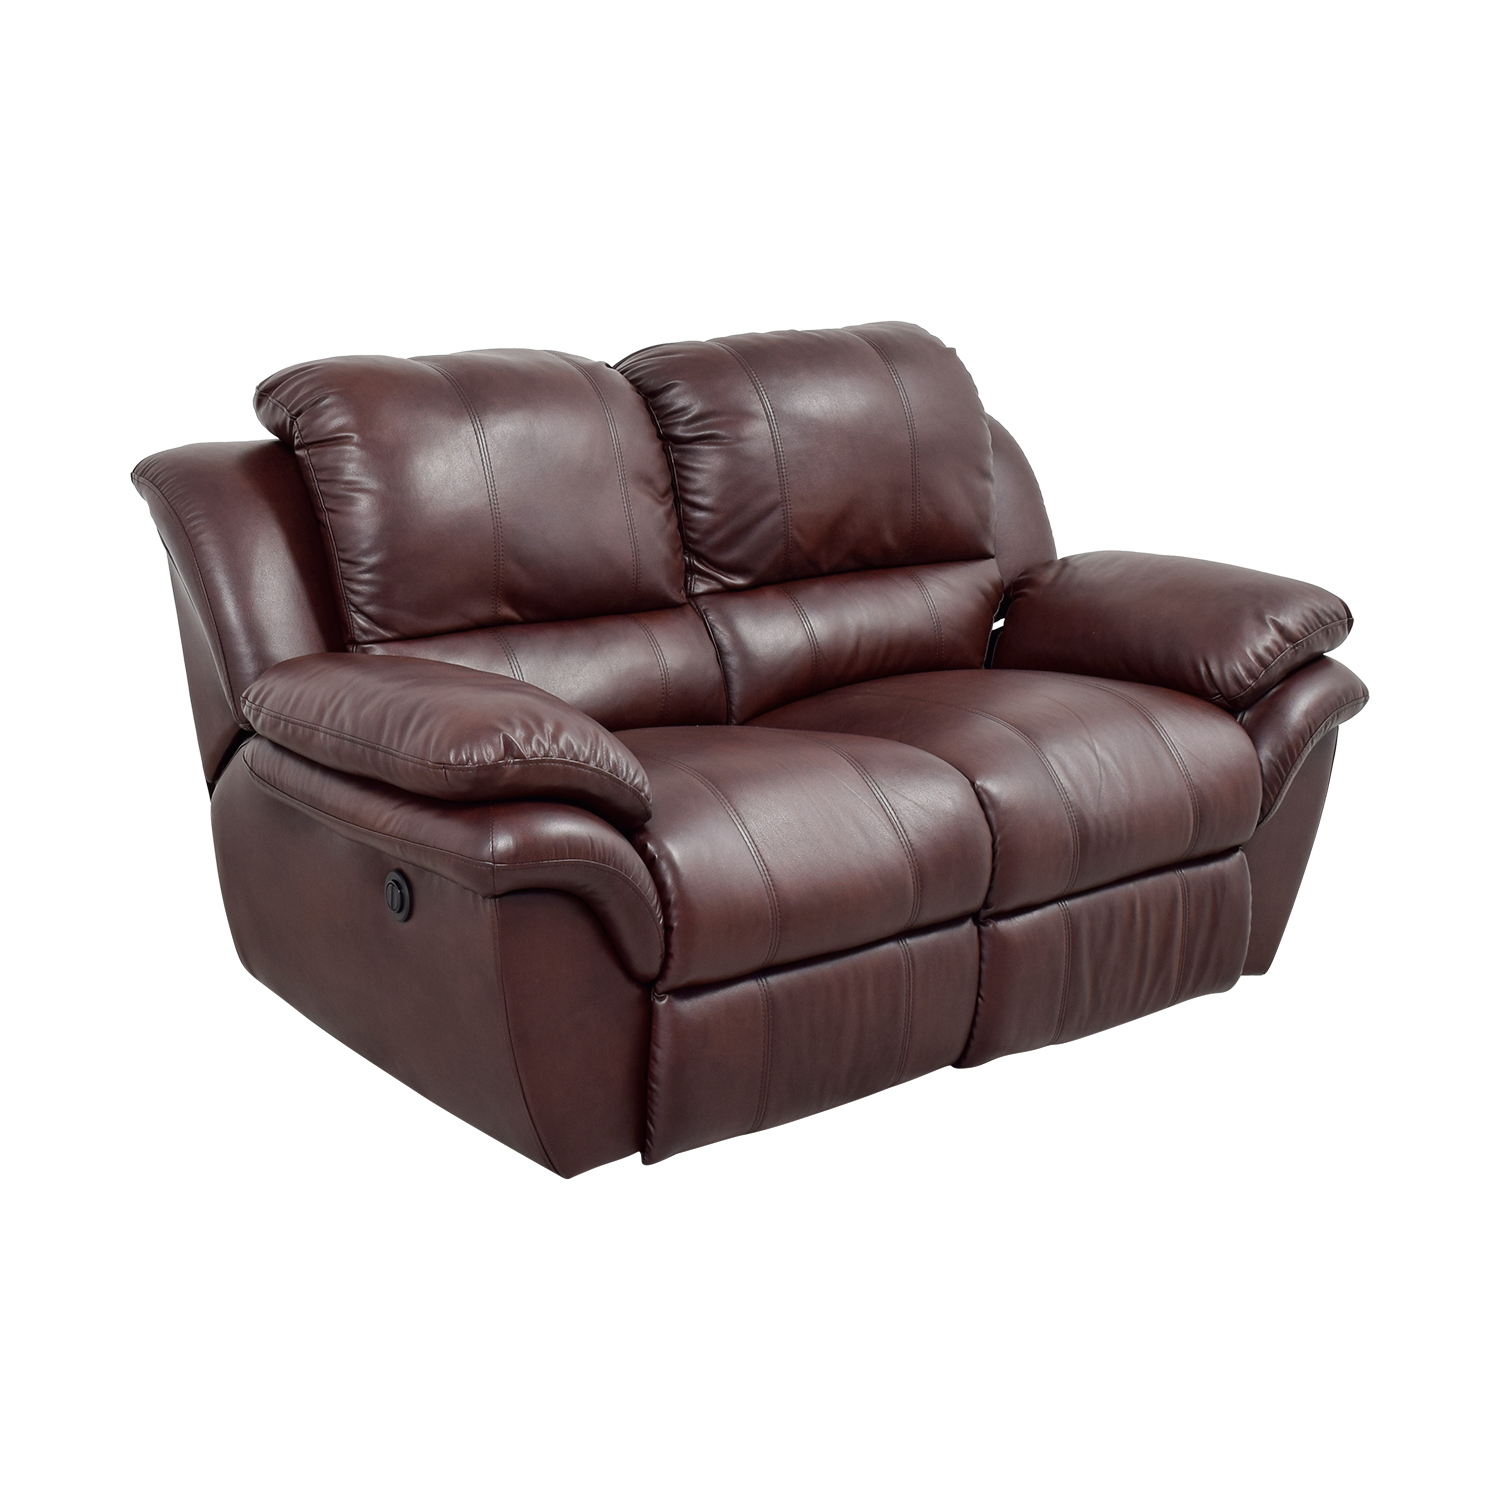 bobs furniture sofa recliner 3 piece sofas 78 off bob 39s brown leather